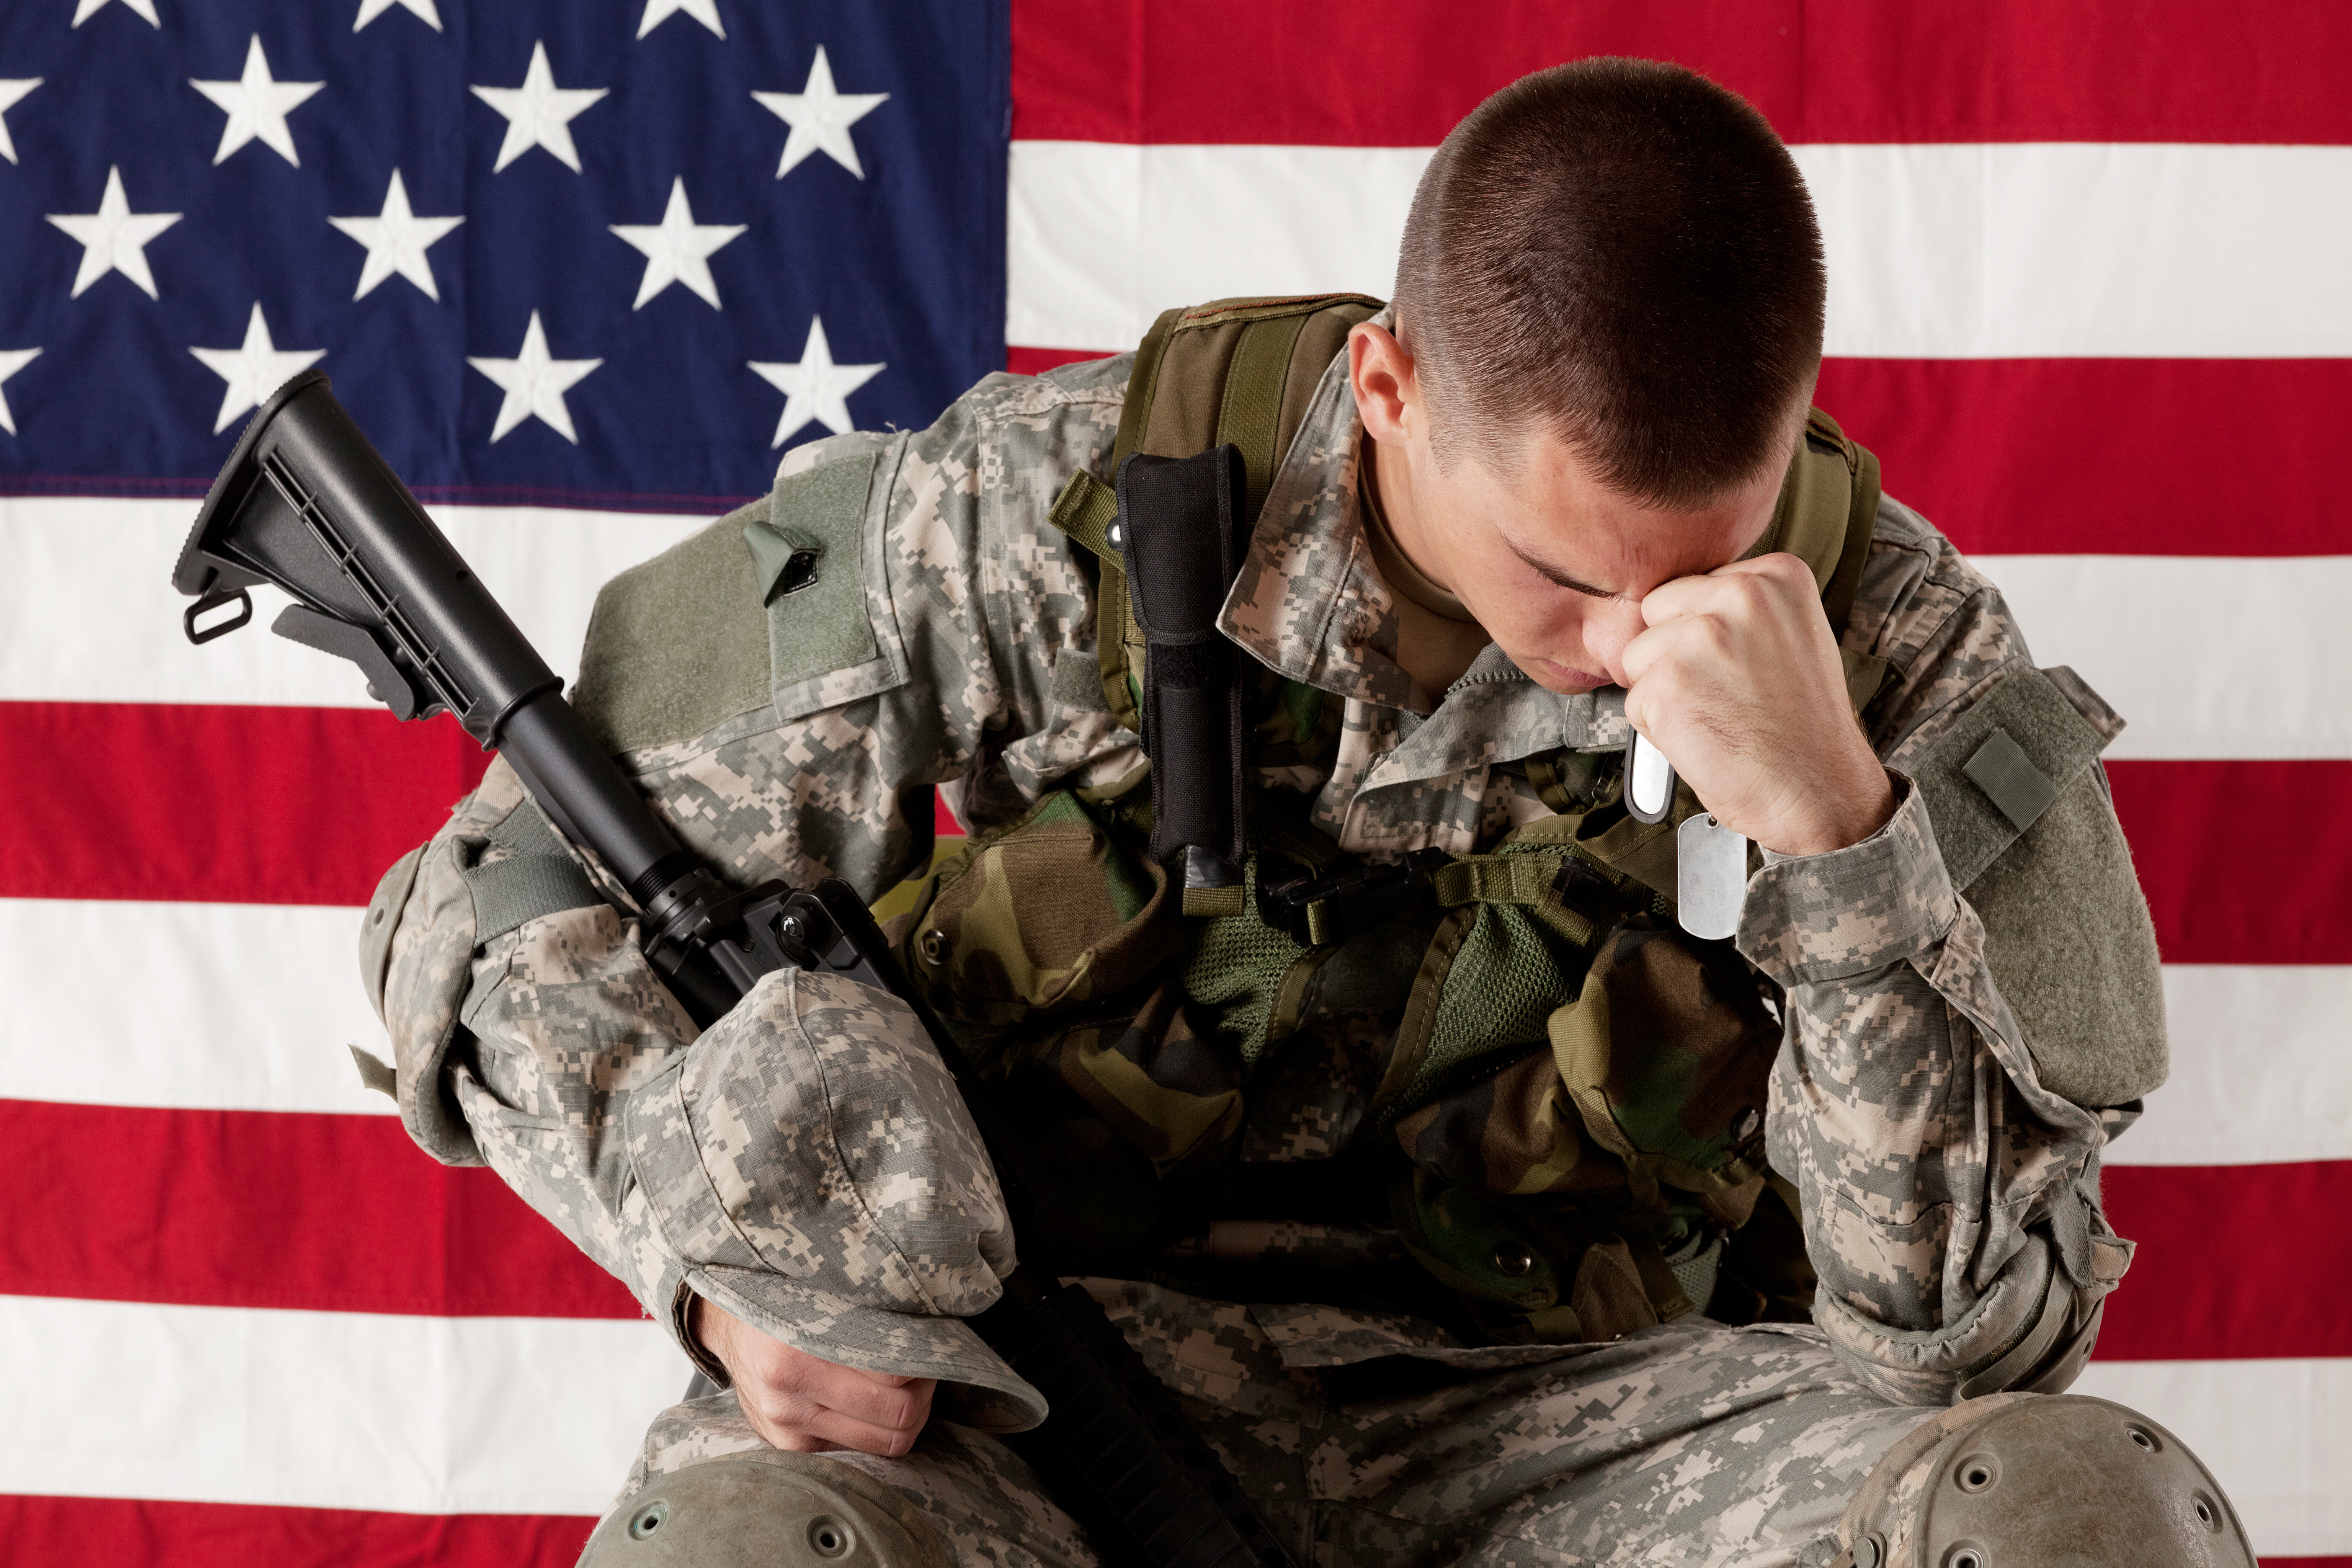 Army man sitting in front of an American flag